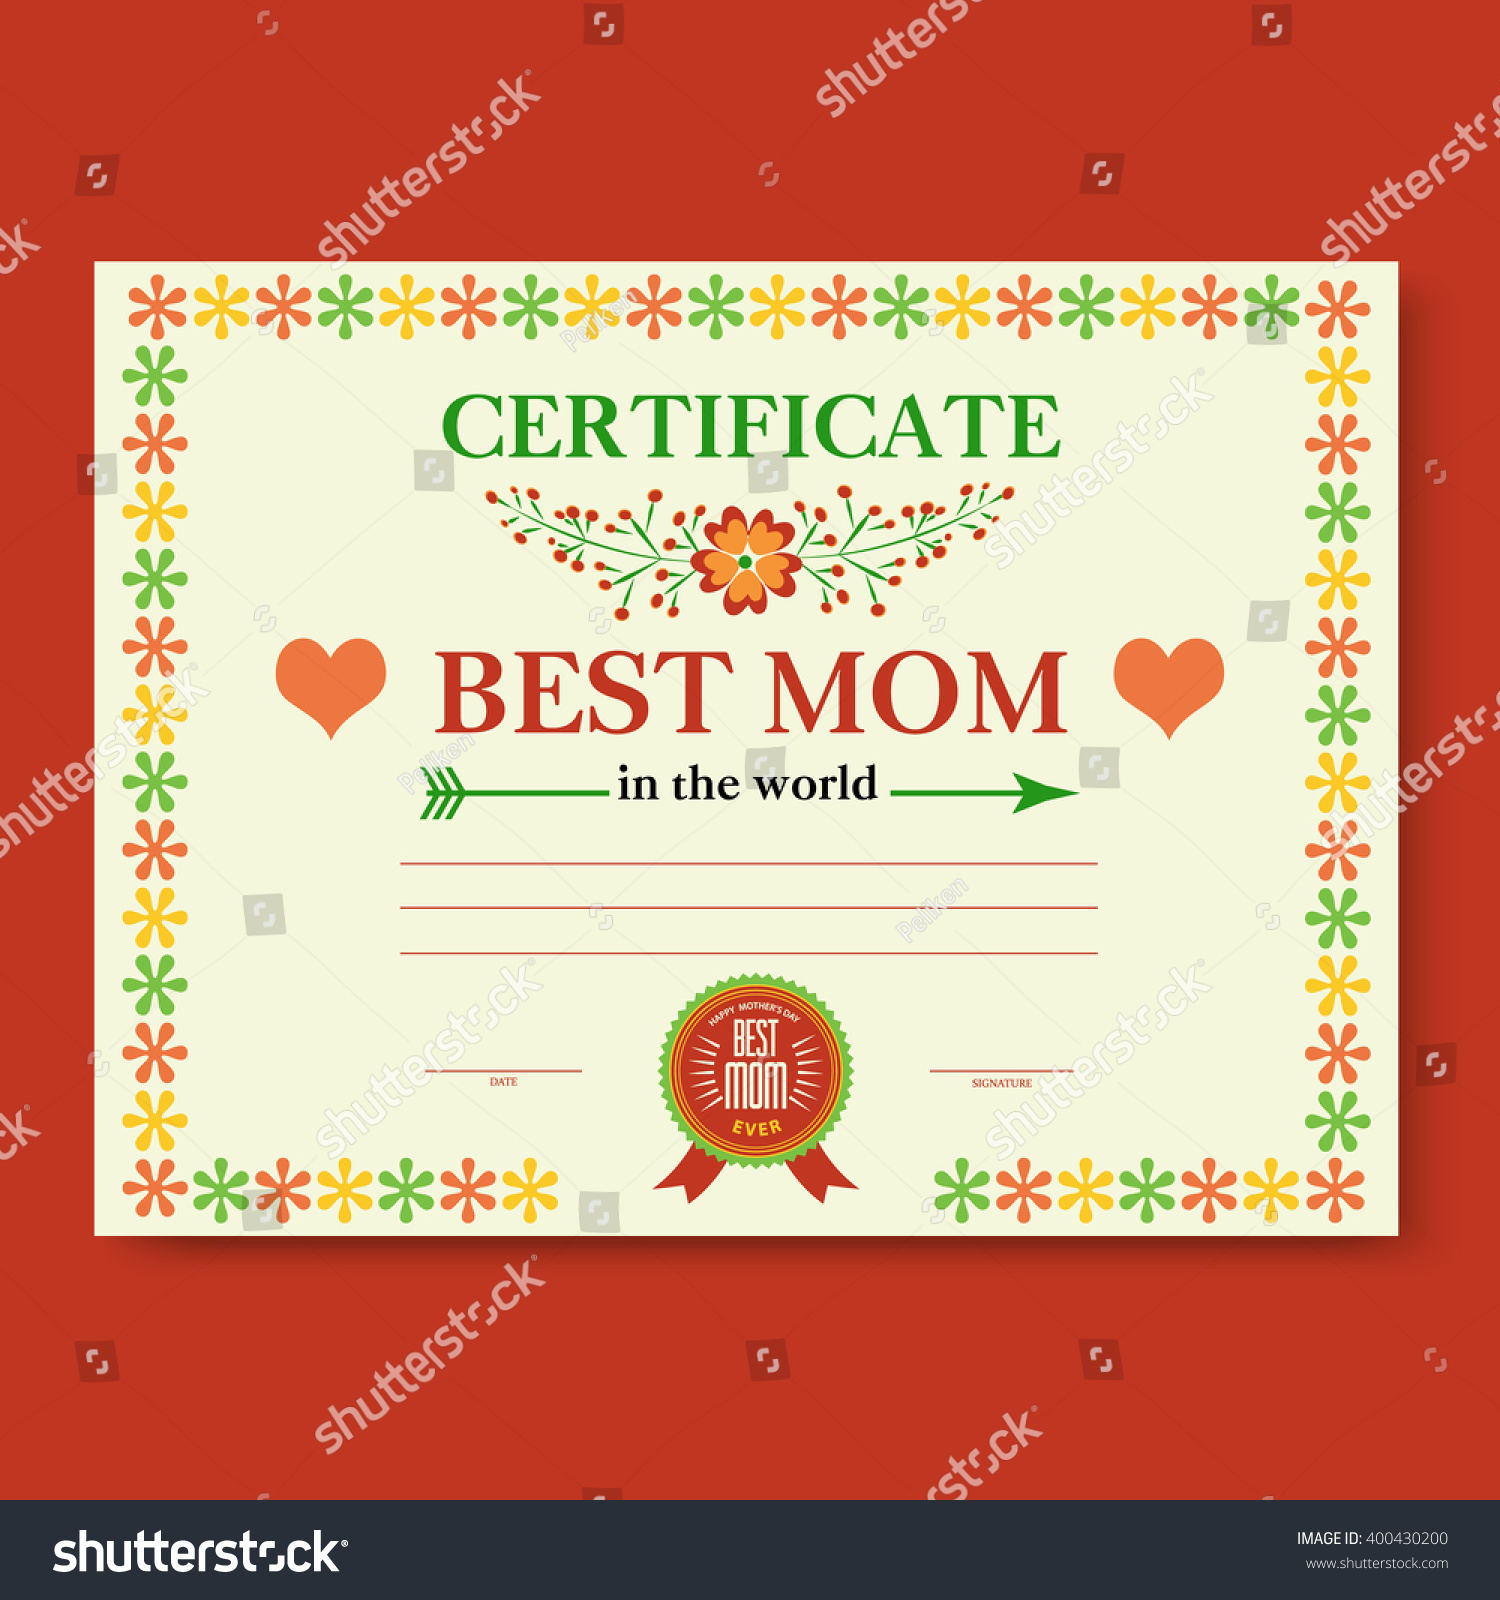 Template Certificate Diploma Congratulations Mothers Day Stock